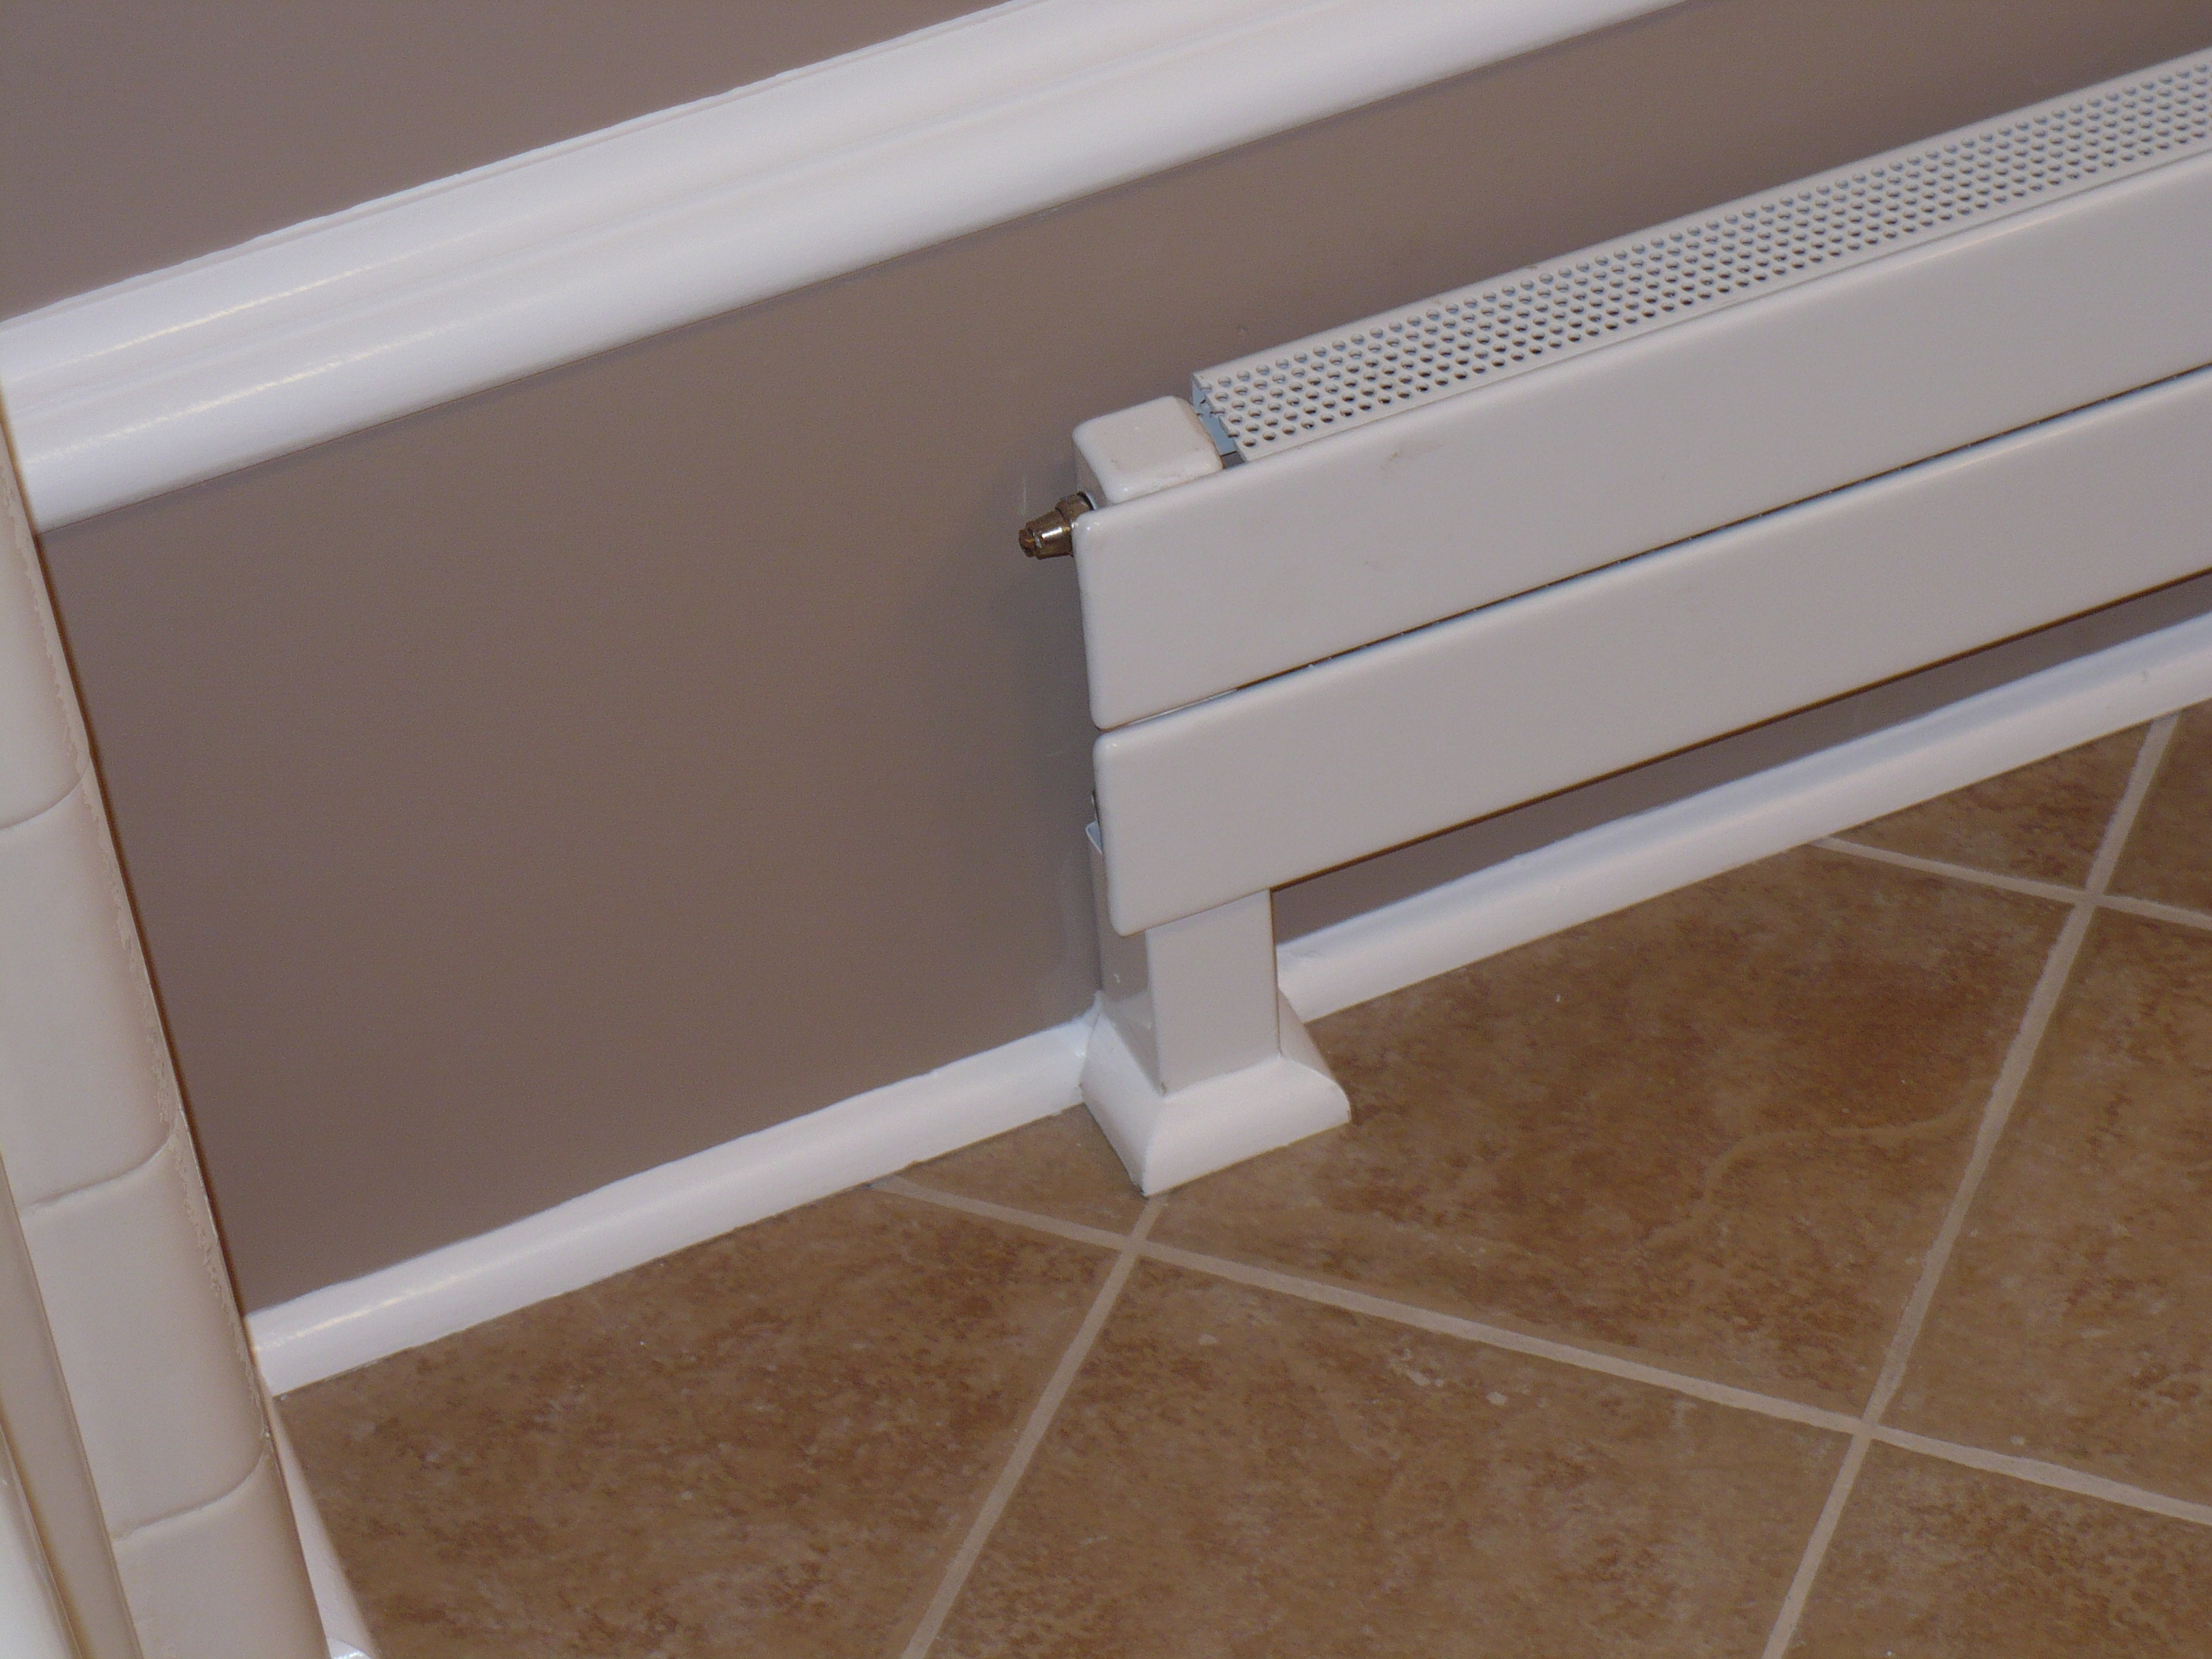 Barthoom Tile Runtal Heater Trim Reed S Woods Inc